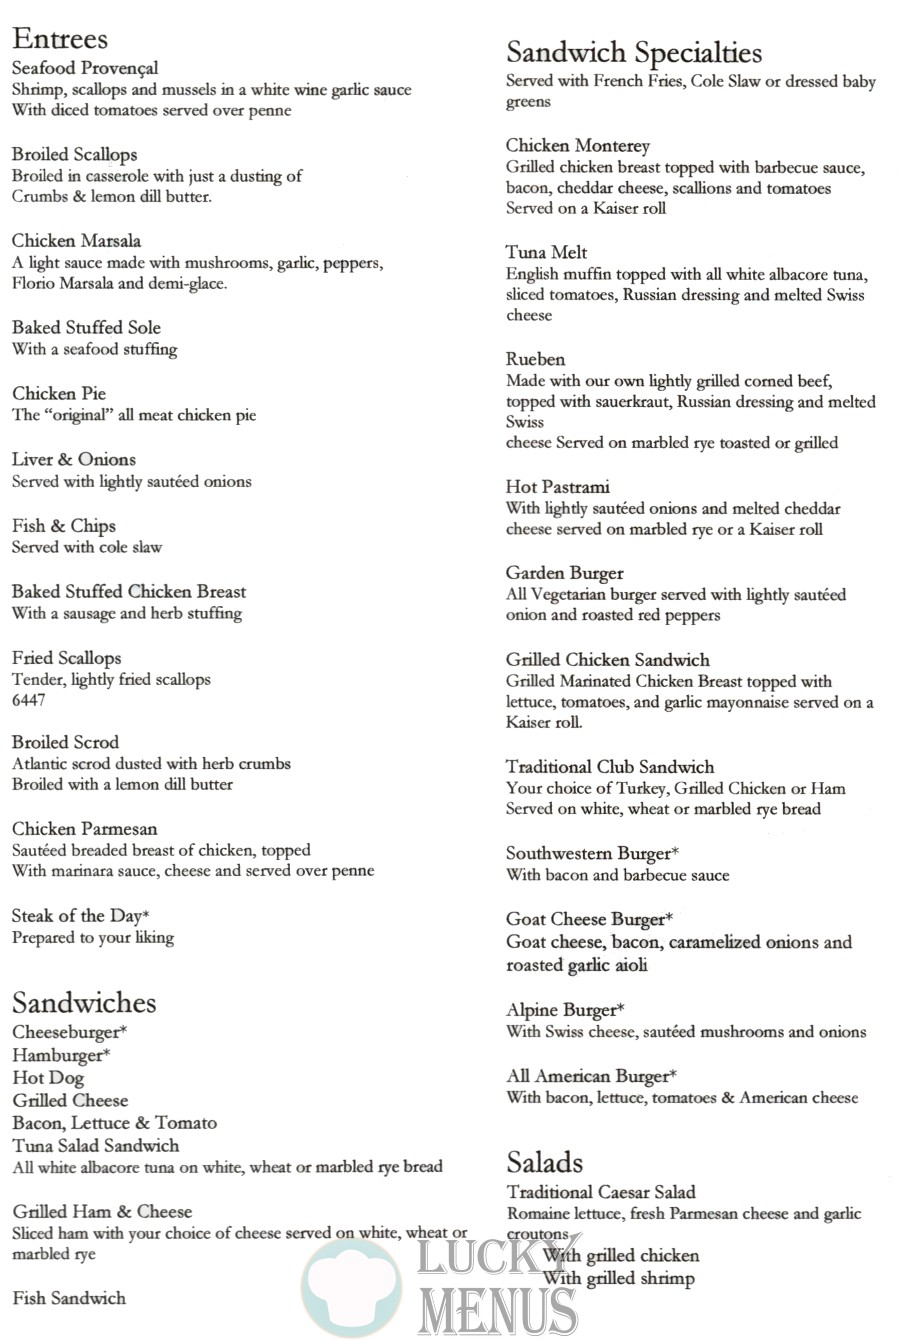 Marguerite's Take Out Menu - Entrees, Sandwiches, Sandwich Specialties